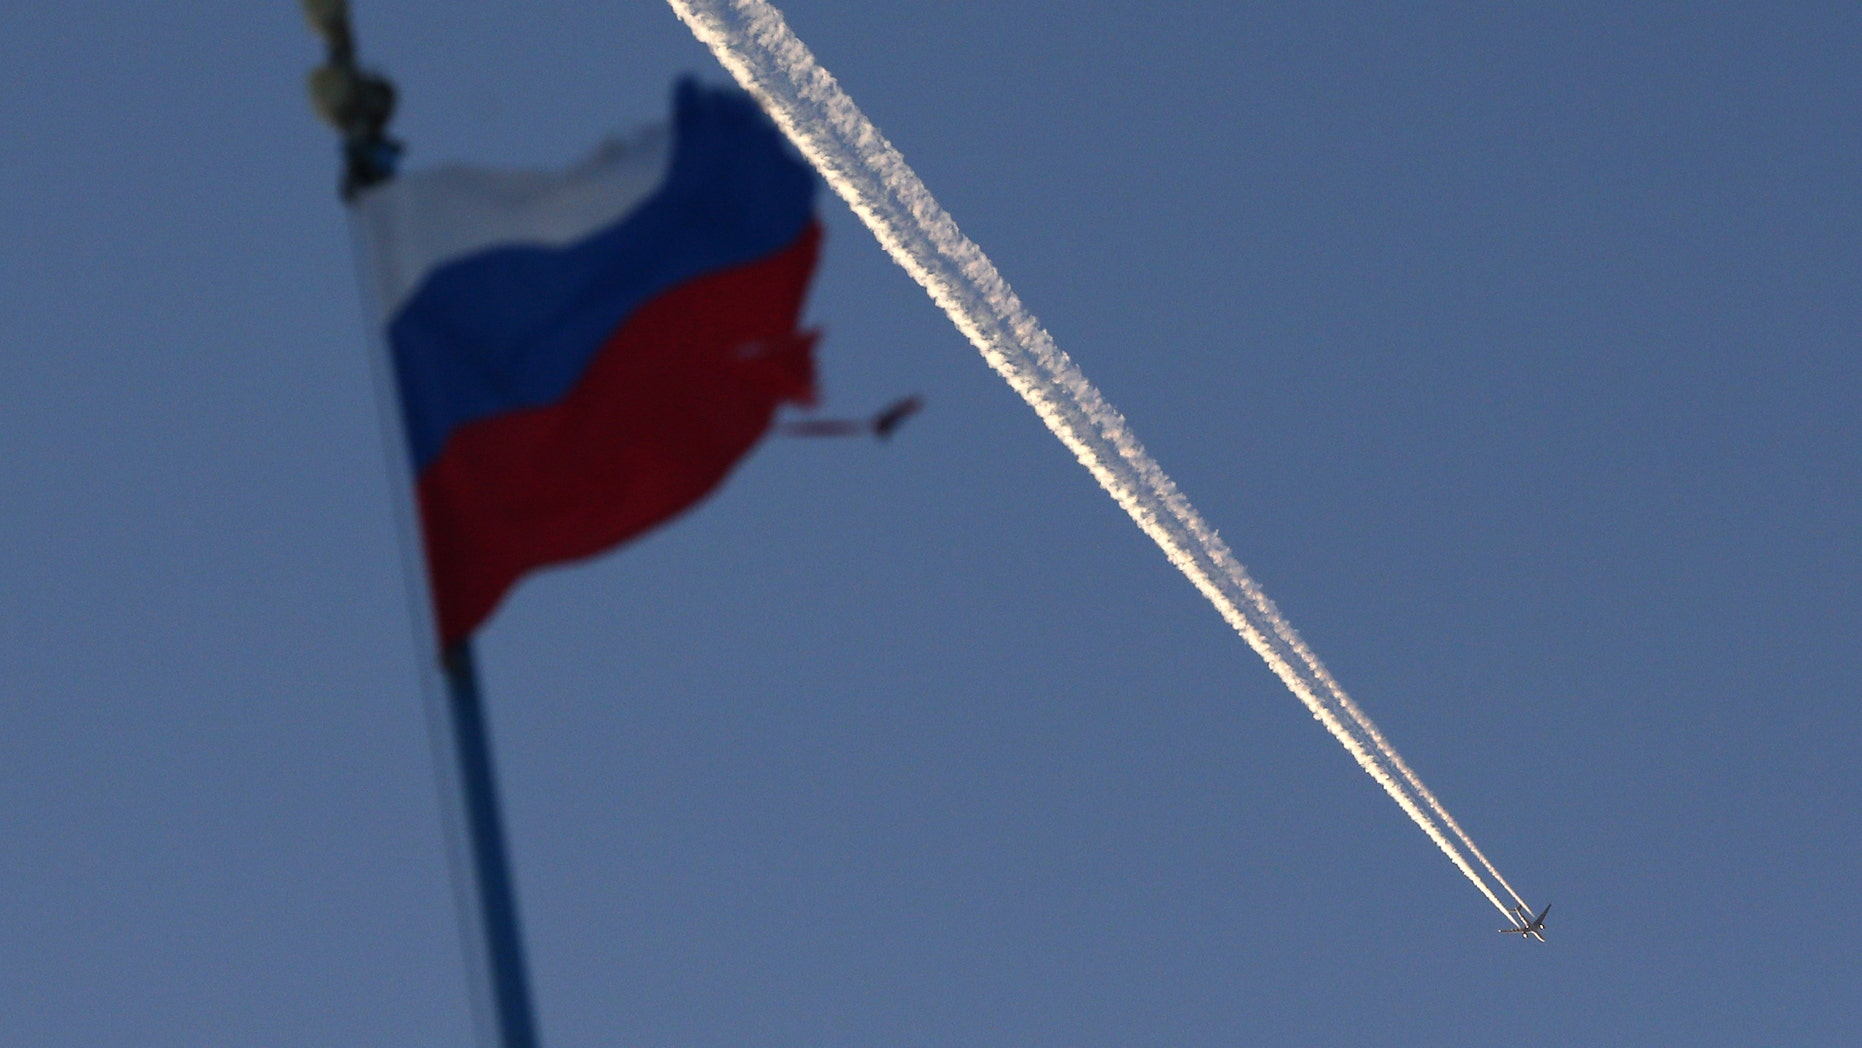 File photo - The Russian state flag flutters, with a plane flying in the sky in the background, outside the Siberian city of Krasnoyarsk, Russia Jan. 27, 2018. (REUTERS/Ilya Naymushin)